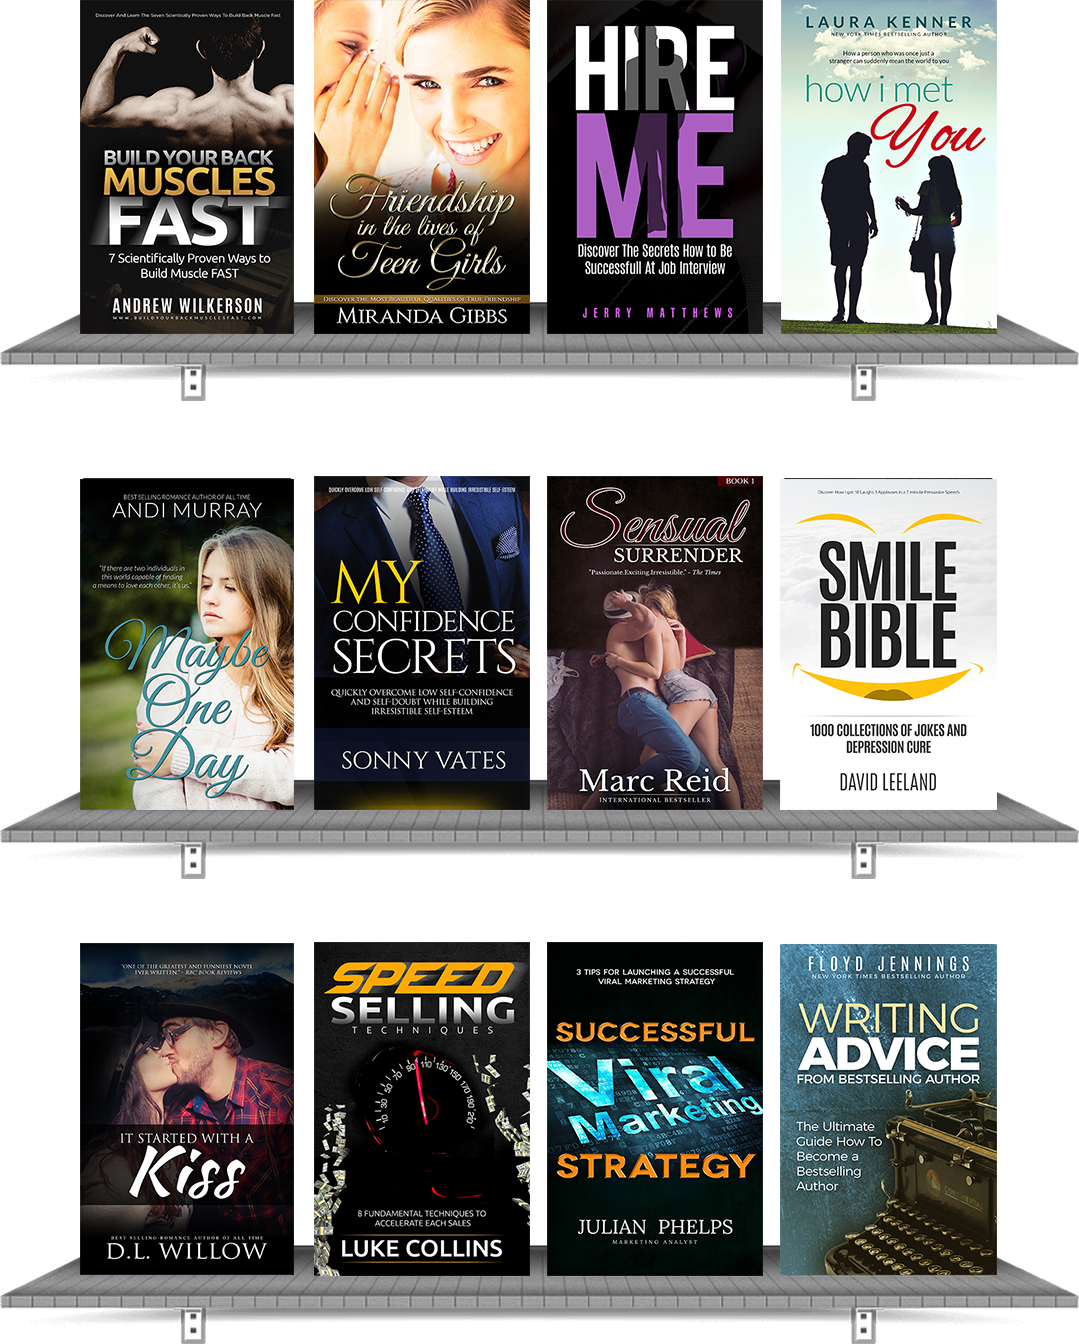 kindlespy-cover-templates-04